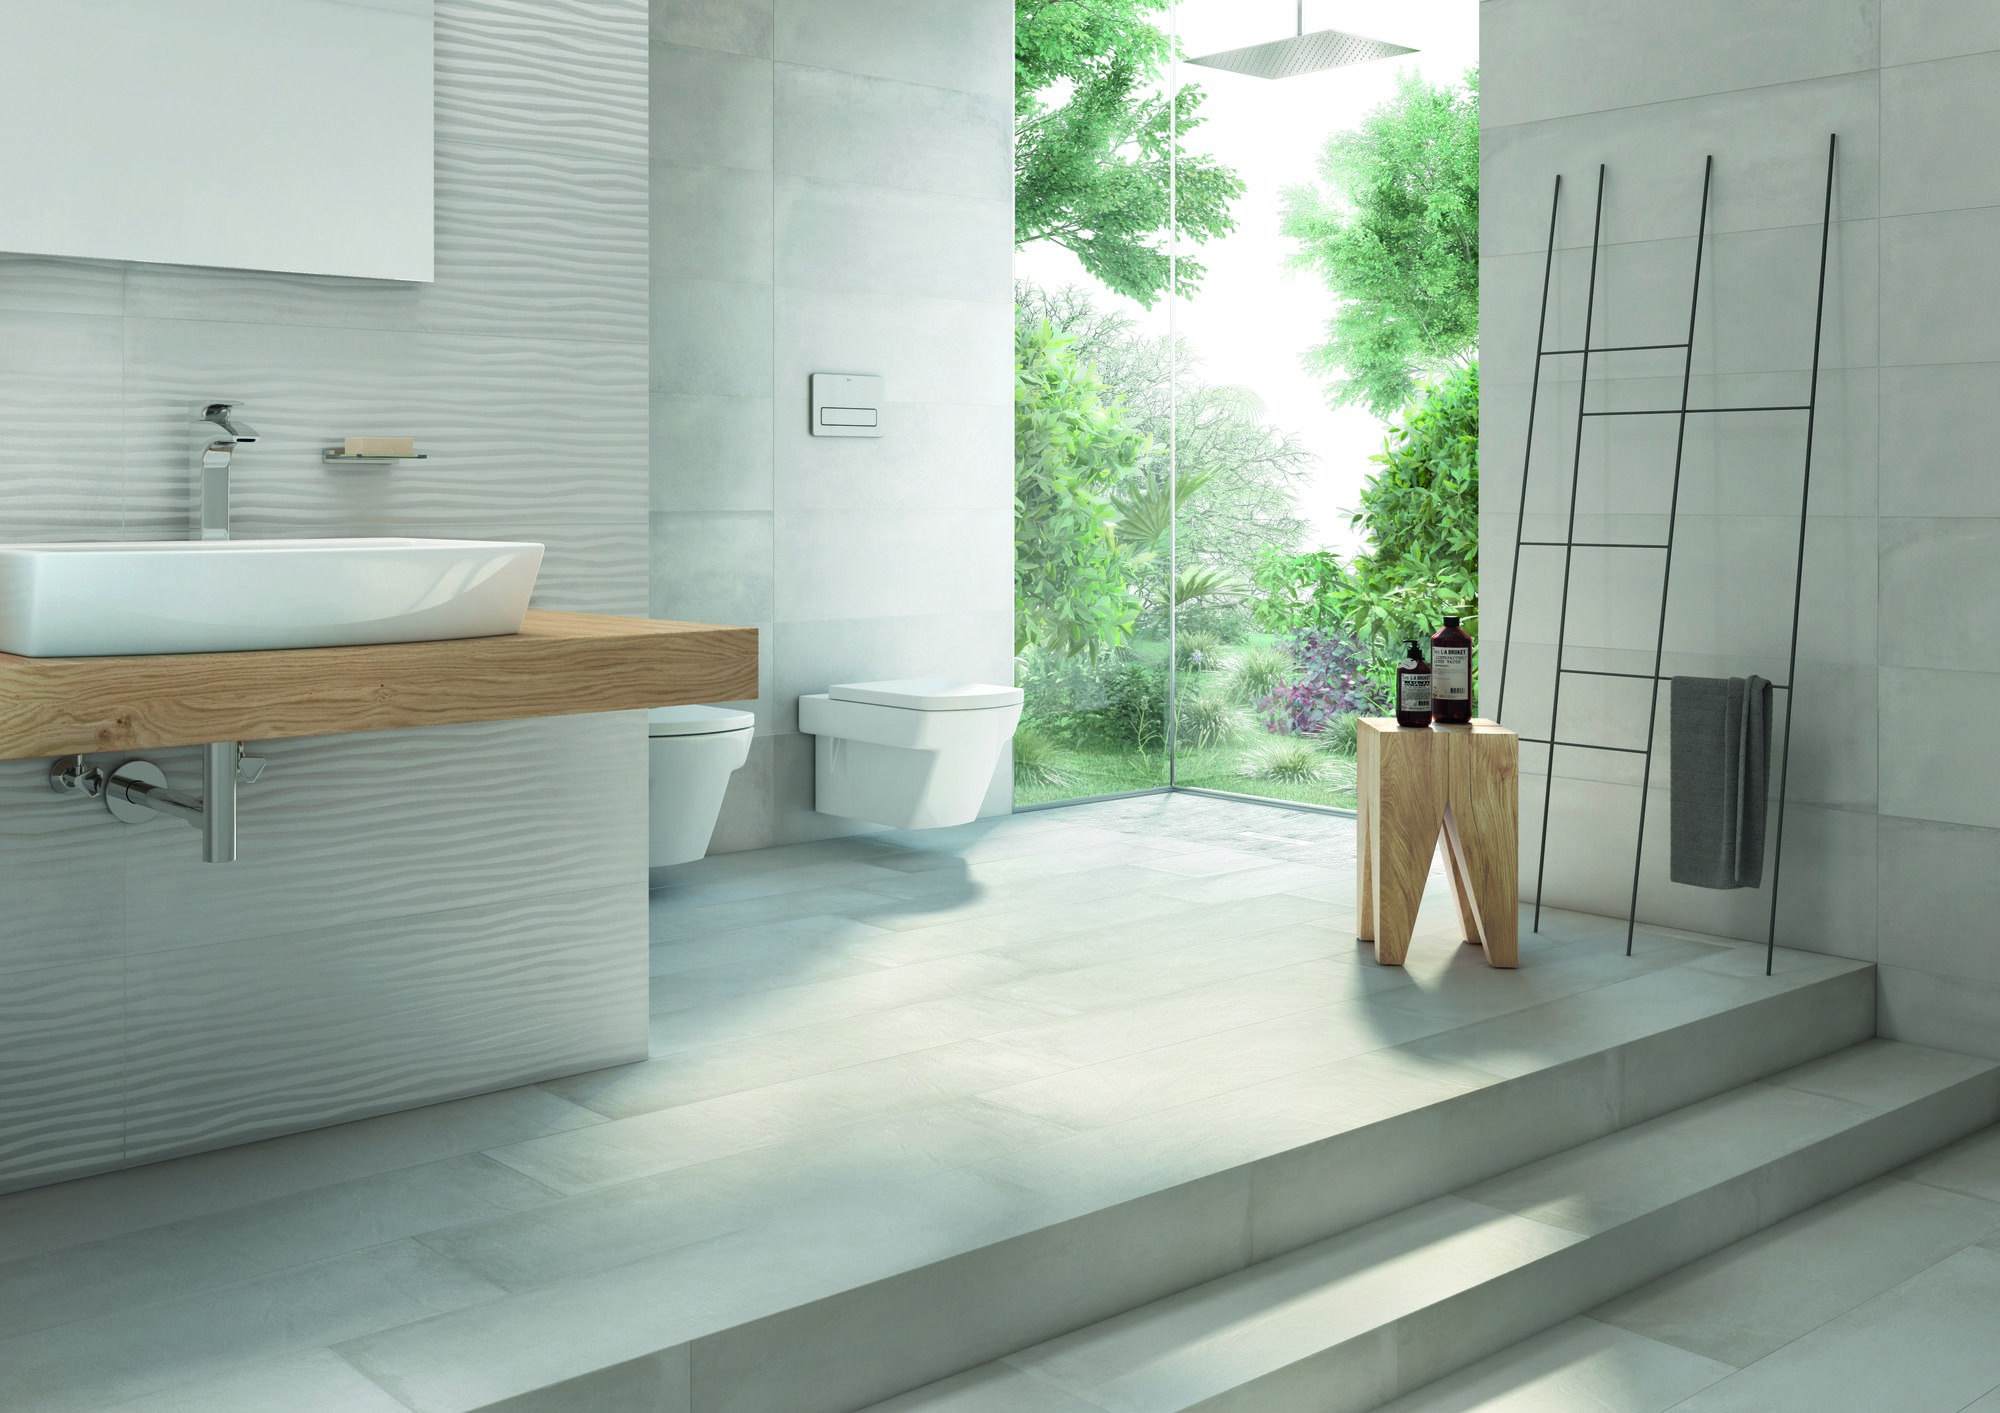 Chelsea gris ceramic wall by roca httprocatilegroup discover our ceramic from roca tile usa indoor and outdoor ceramic tiles dailygadgetfo Images